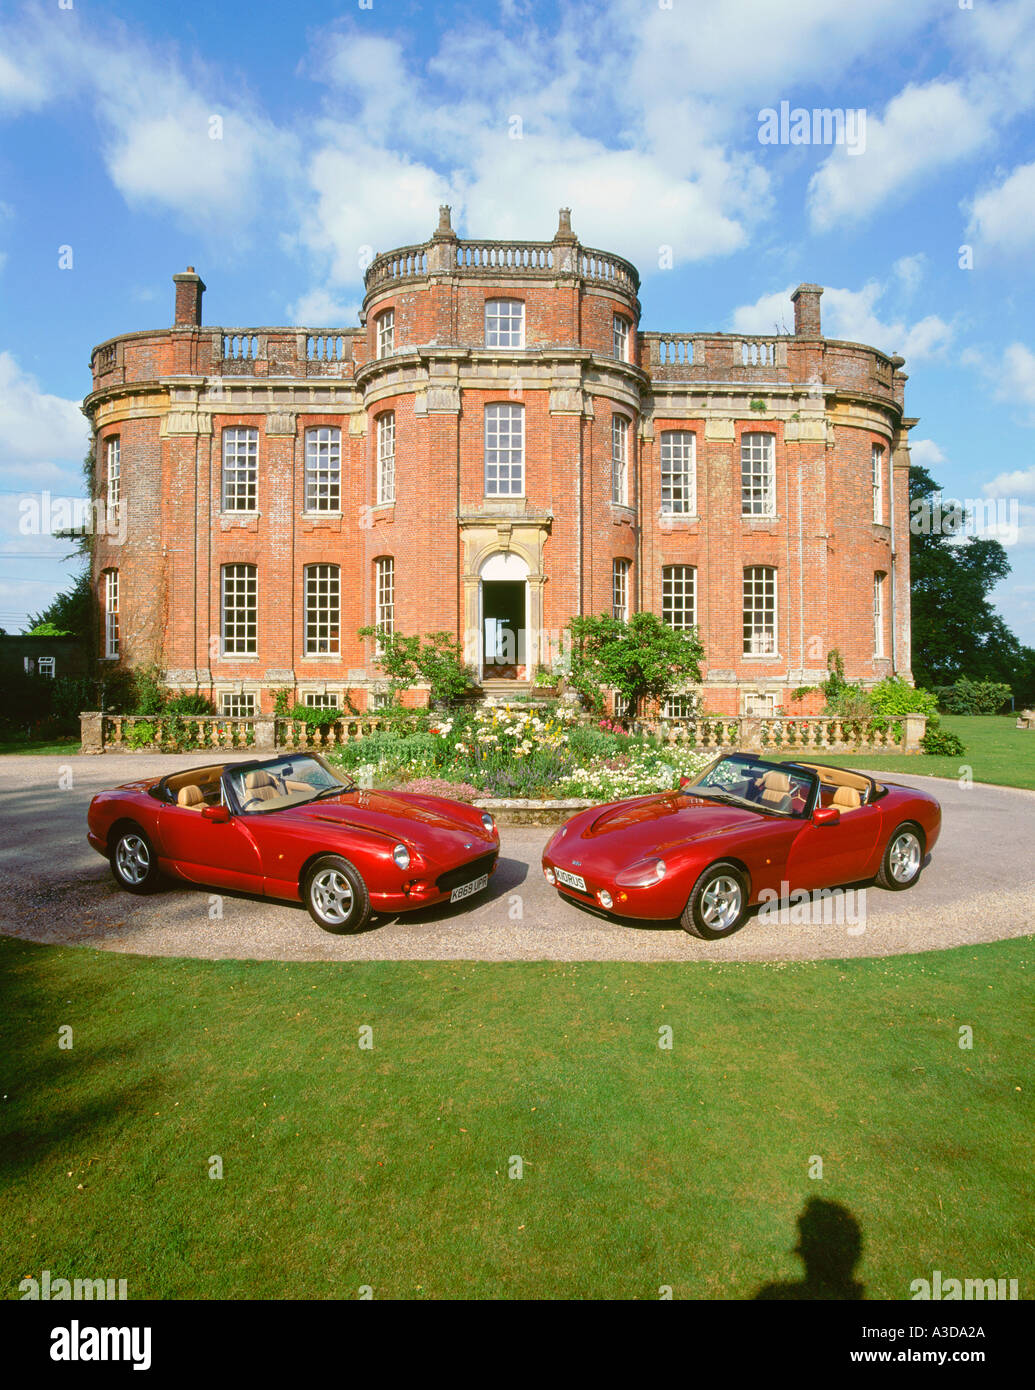 1993 TVR Griffith with1993 TVR Chimaera - Stock Image